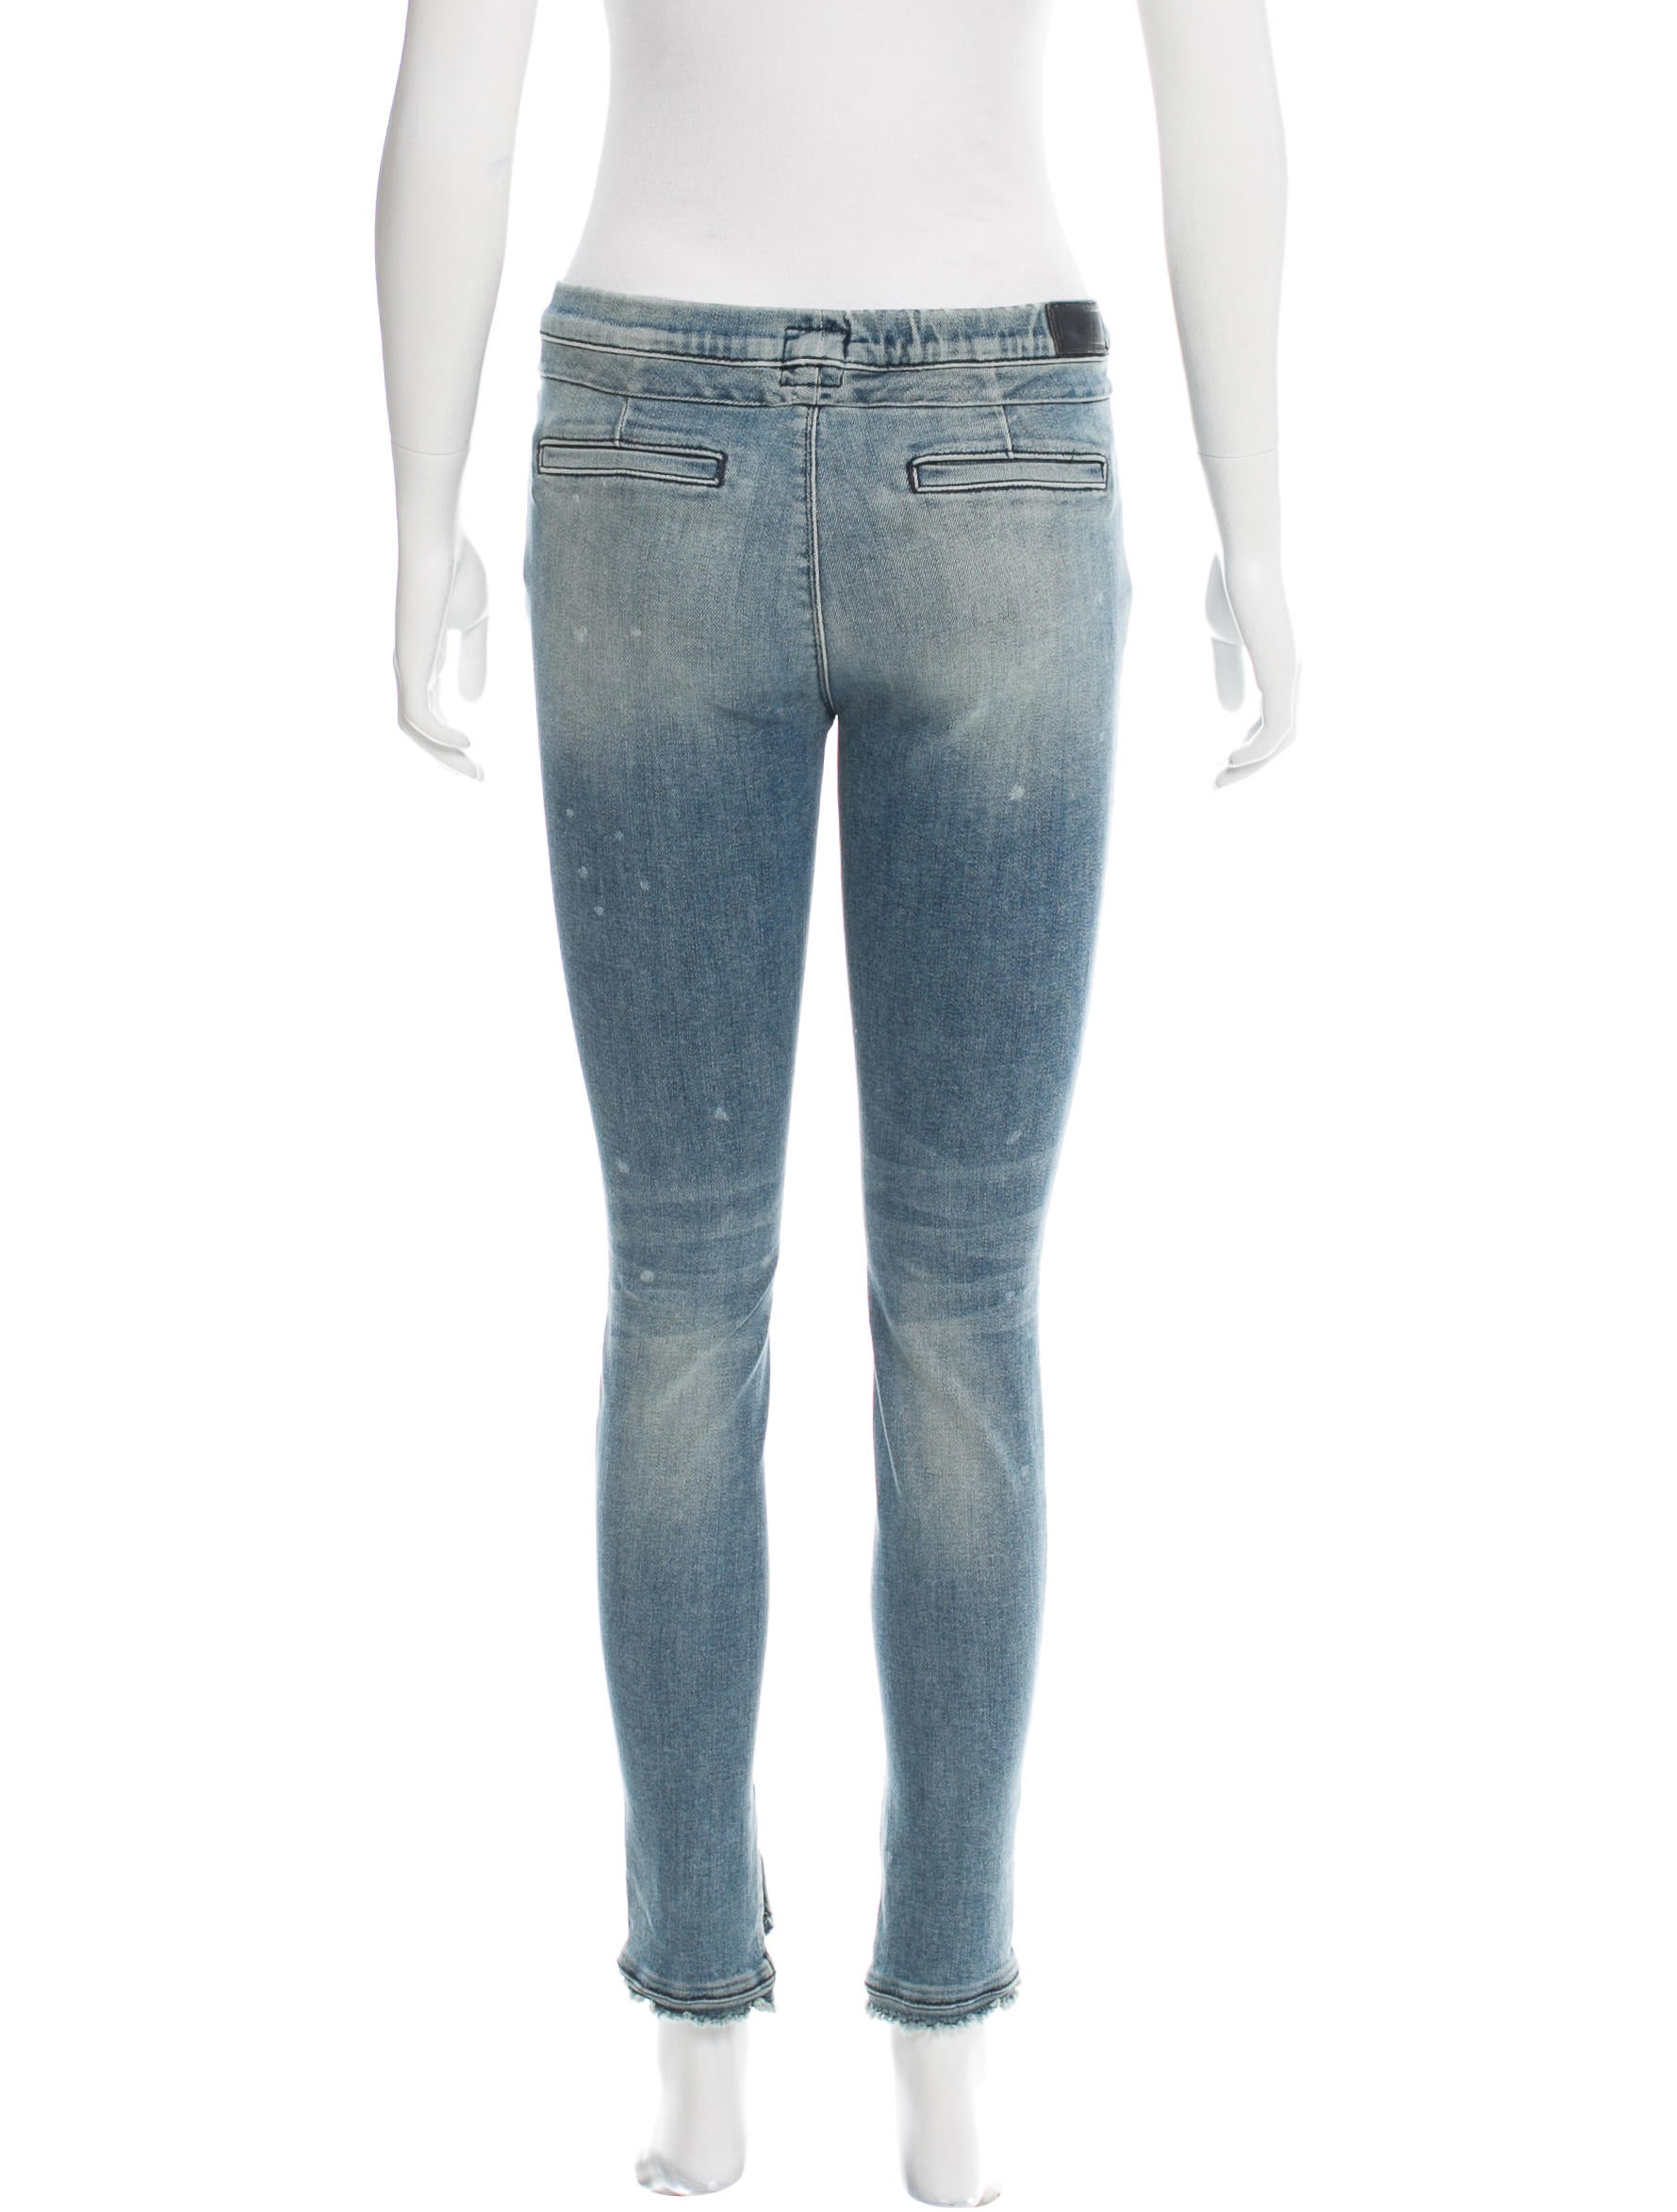 makeshop-mdrcky9h.ga: distressed mens jeans. From The Community. Fashionable stretch jeans pants trousers for outfit at night or club. FEESON Men's Ripped Slim Fit Straight Denim Jeans Vintage Style Broken Holes. by FEESON. $ - $ $ 25 $ 33 99 Prime. FREE Shipping on eligible orders.